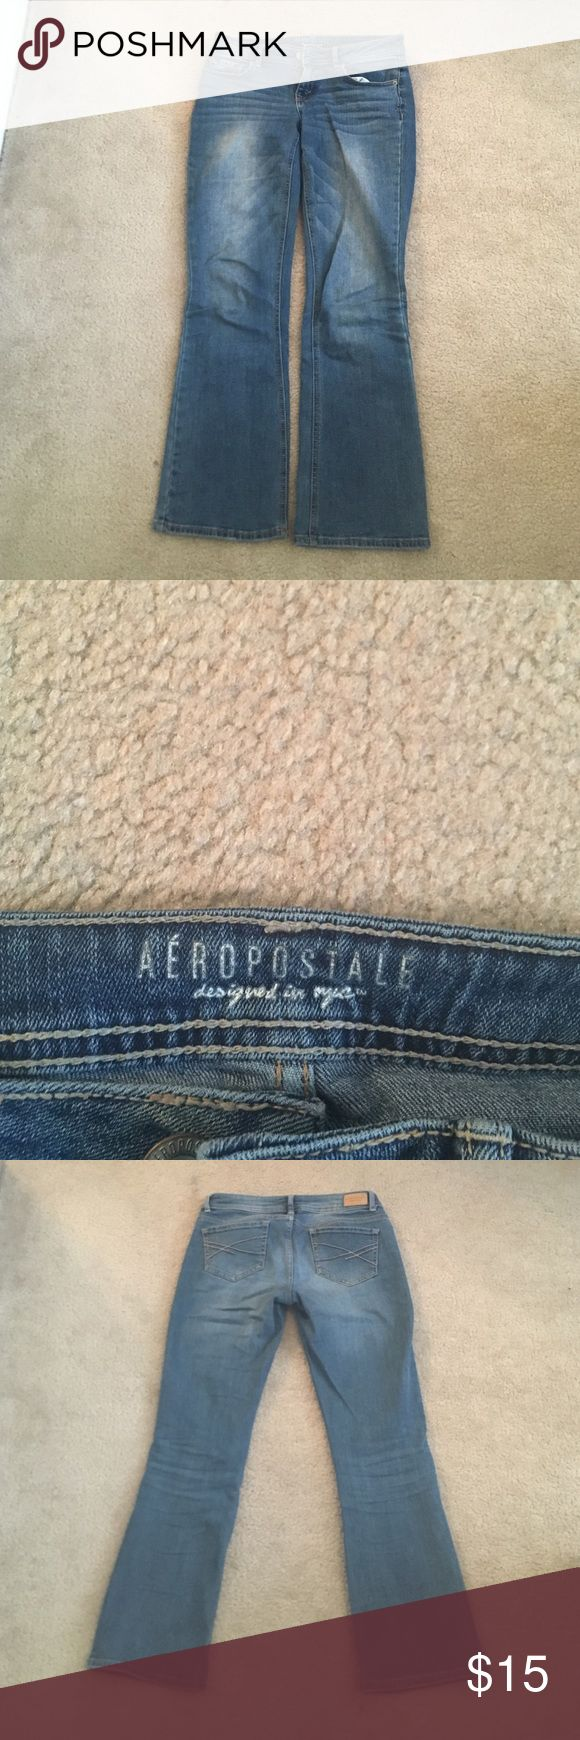 Aeropostale boot cut jeans size 2/short Good condition. Short or petite size. 2. Very fashionable. Comfy. Aeropostale Jeans Boot Cut